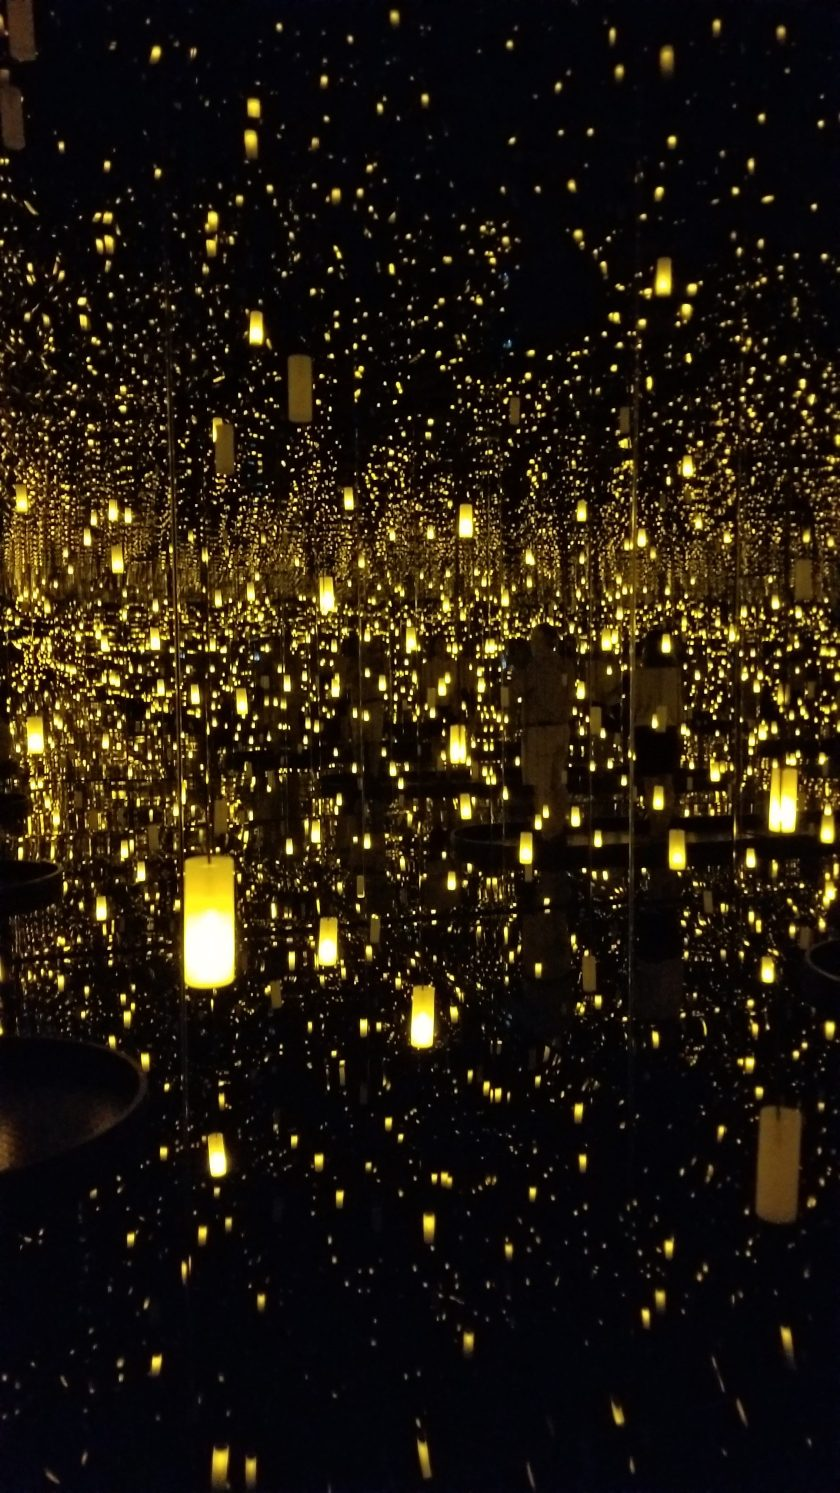 Different Date Night | Yayoi Kusama | Infinity Mirrors | Things to do in Cleveland | L'Albatros | Cheese Board